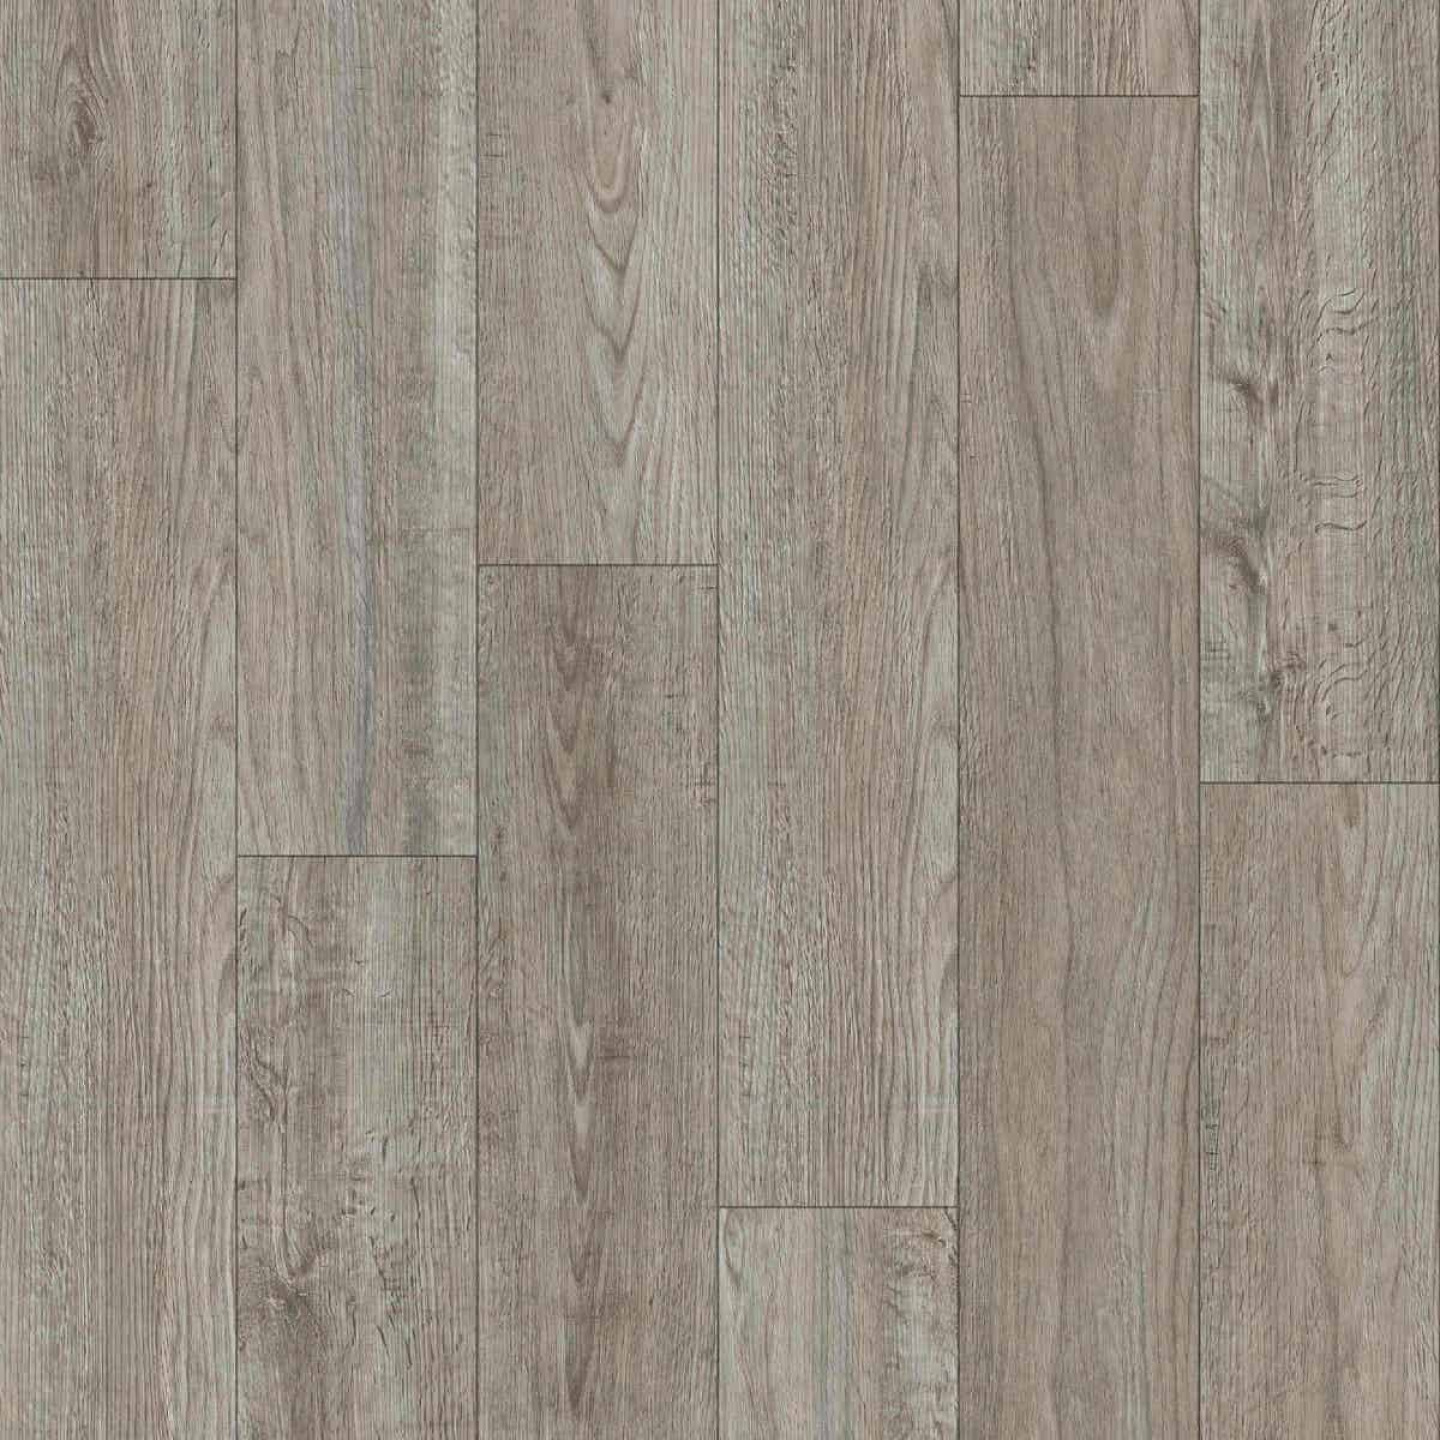 Mohawk Design Elements Rockport Gray 6 In. W x 48 In. L Luxury Vinyl Rigid Core Floor Plank (24.11 Sq. Ft./Case) Image 3